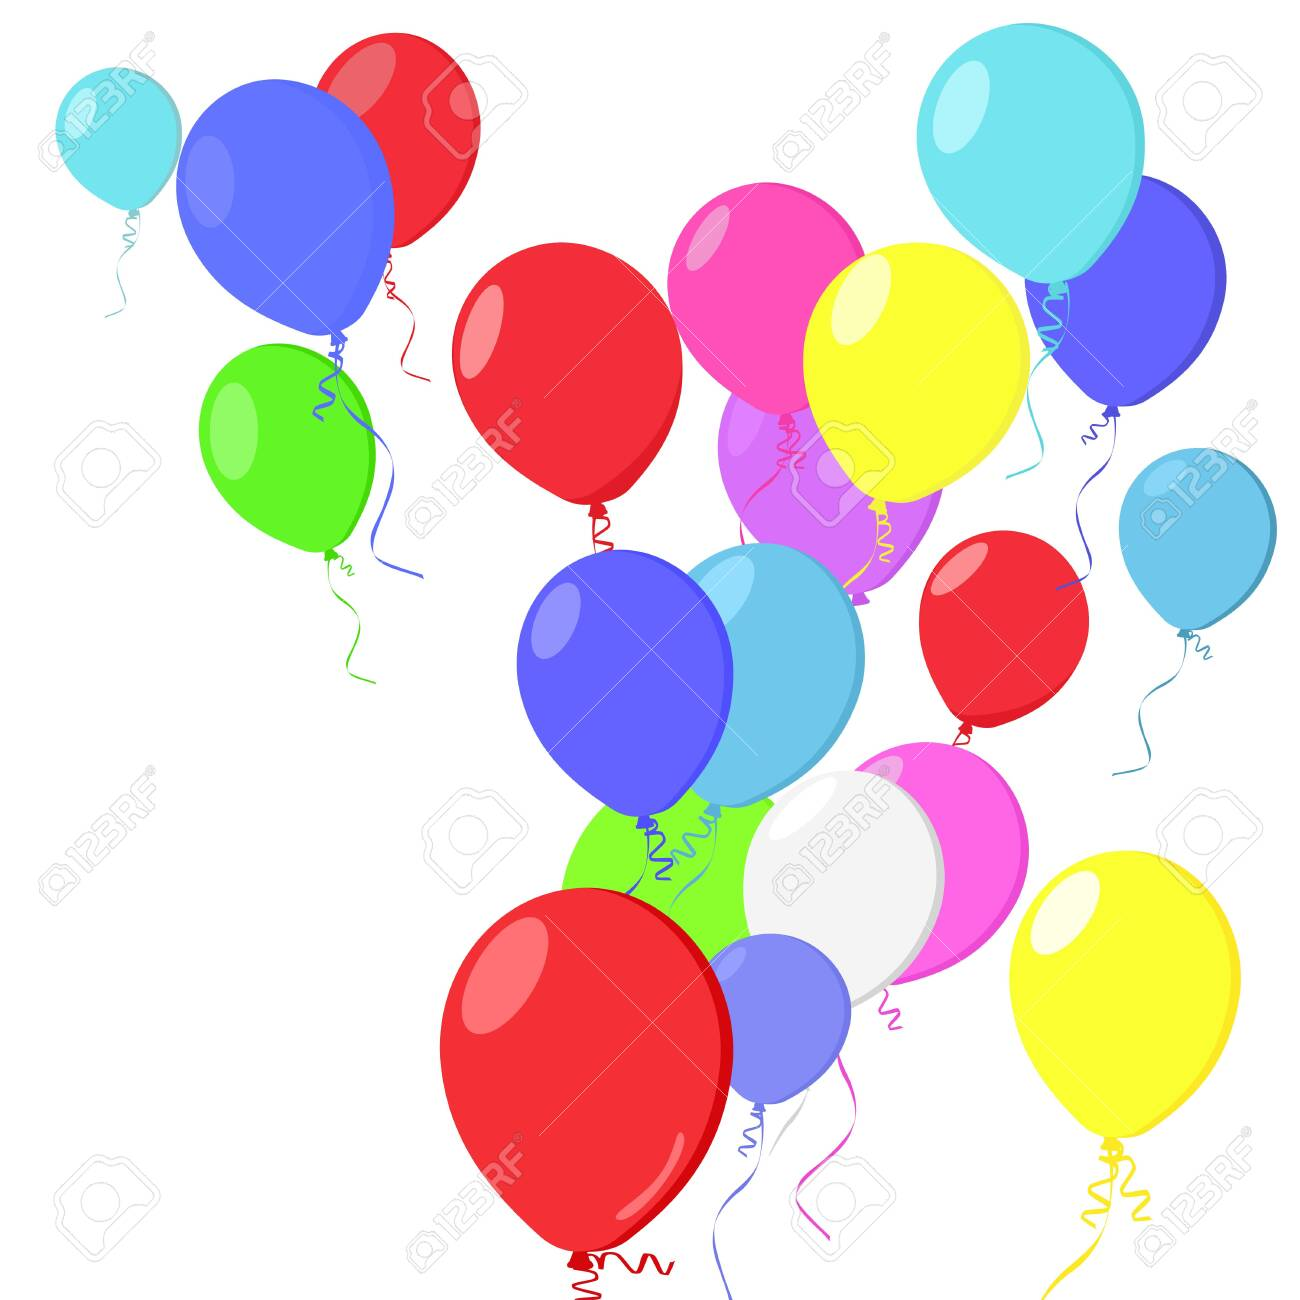 Happy Birthday Balloons Vector On A Transparent Background Royalty Free Cliparts Vectors And Stock Illustration Image 142121074 Select a size birthday baloons. happy birthday balloons vector on a transparent background